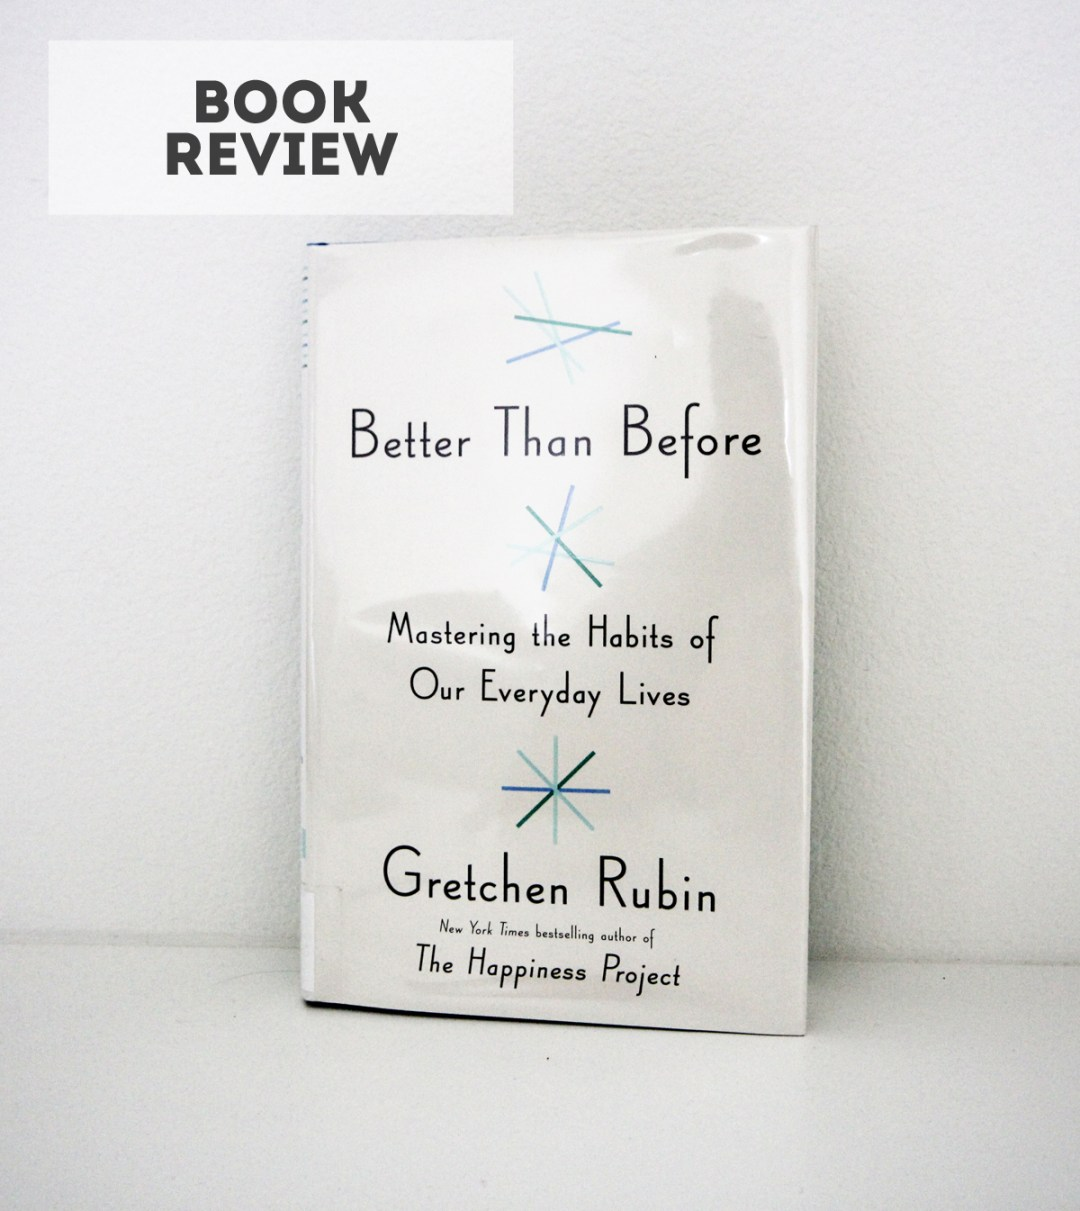 Better Than Before - review at www.randomolive.com